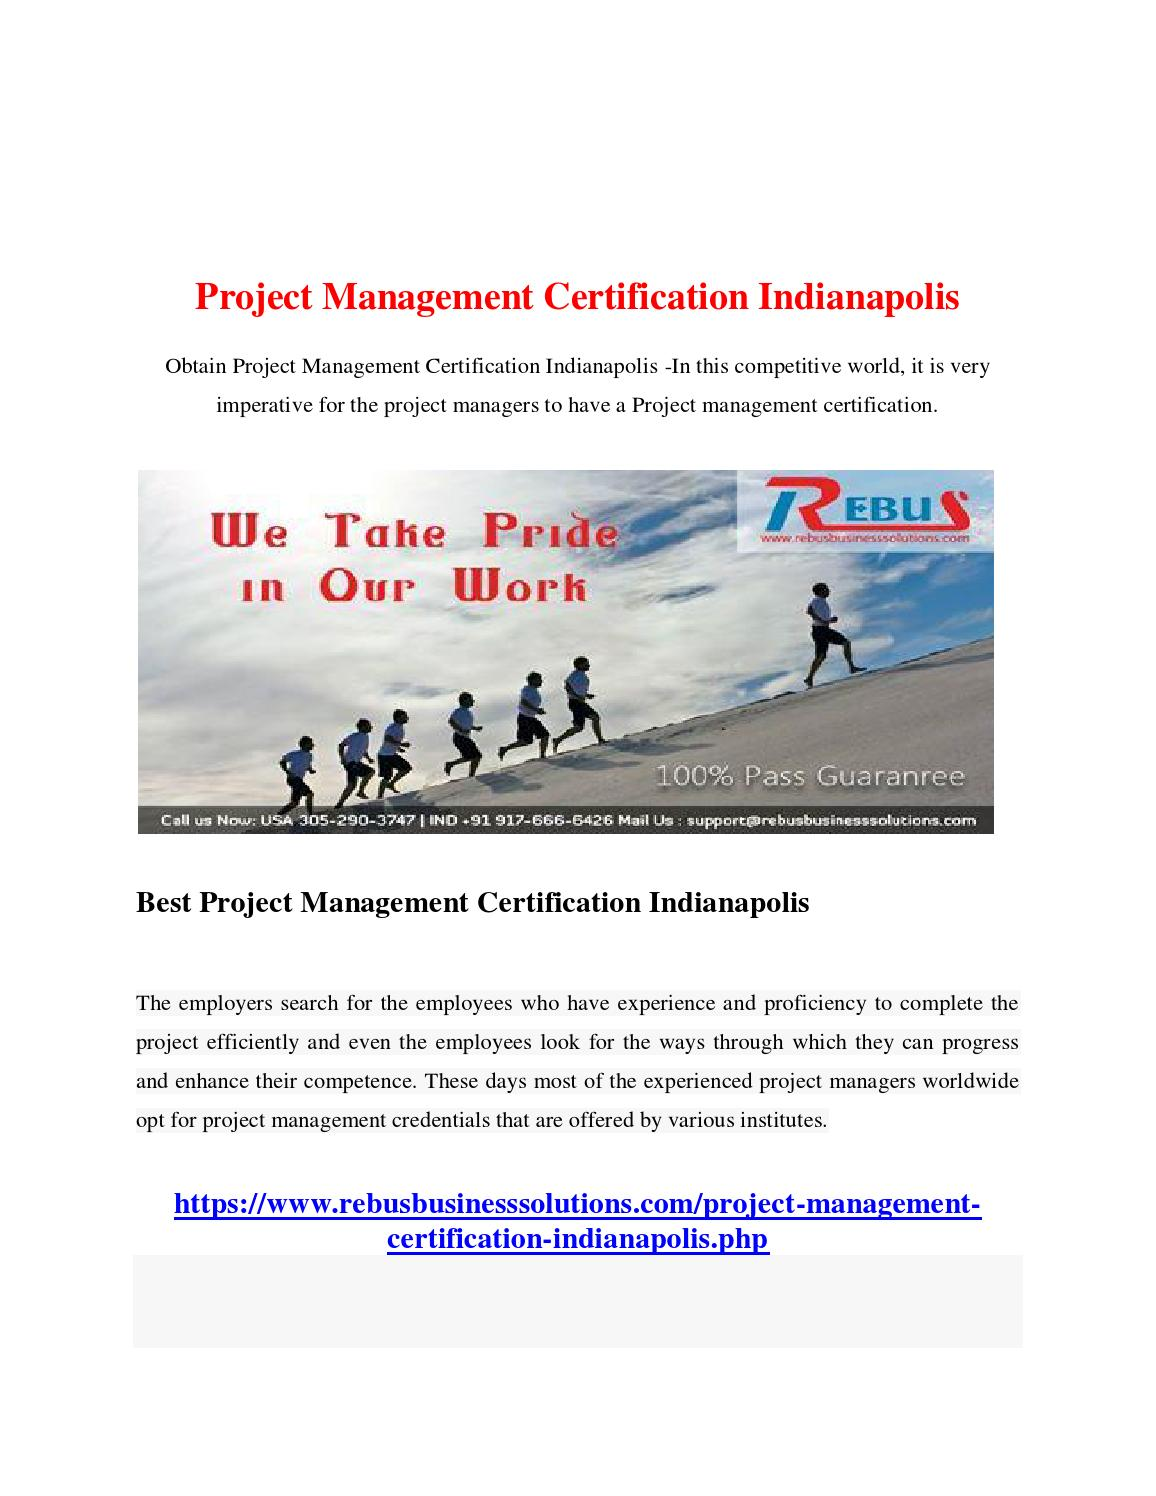 Project management certification indianapolis by sekarse01 issuu xflitez Image collections